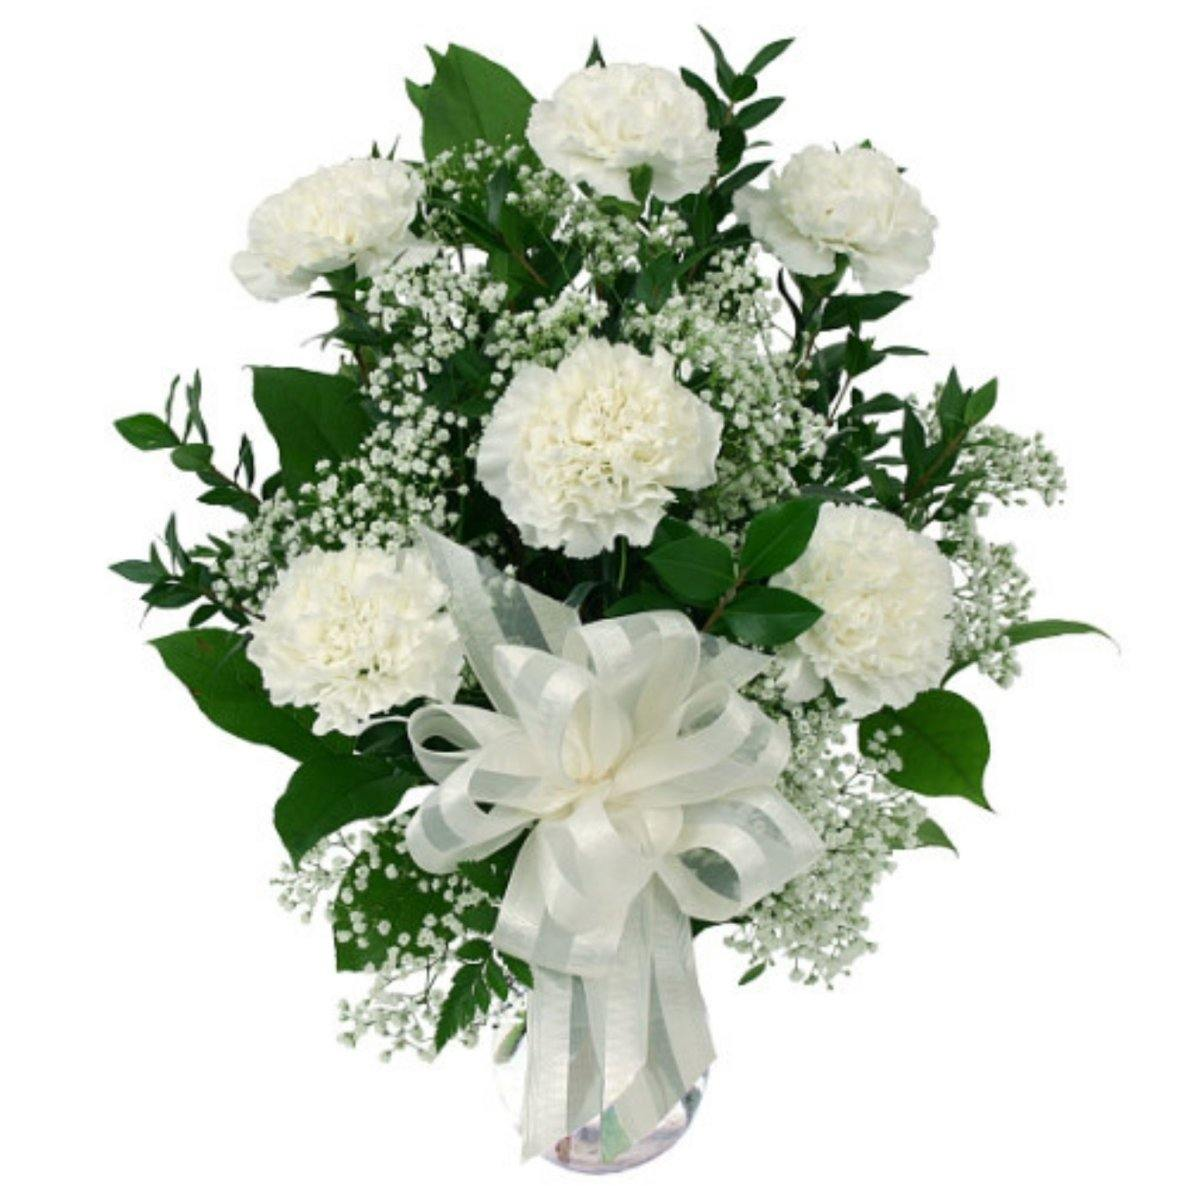 Six White Carnations 2019 - Shalimar Flower Shop